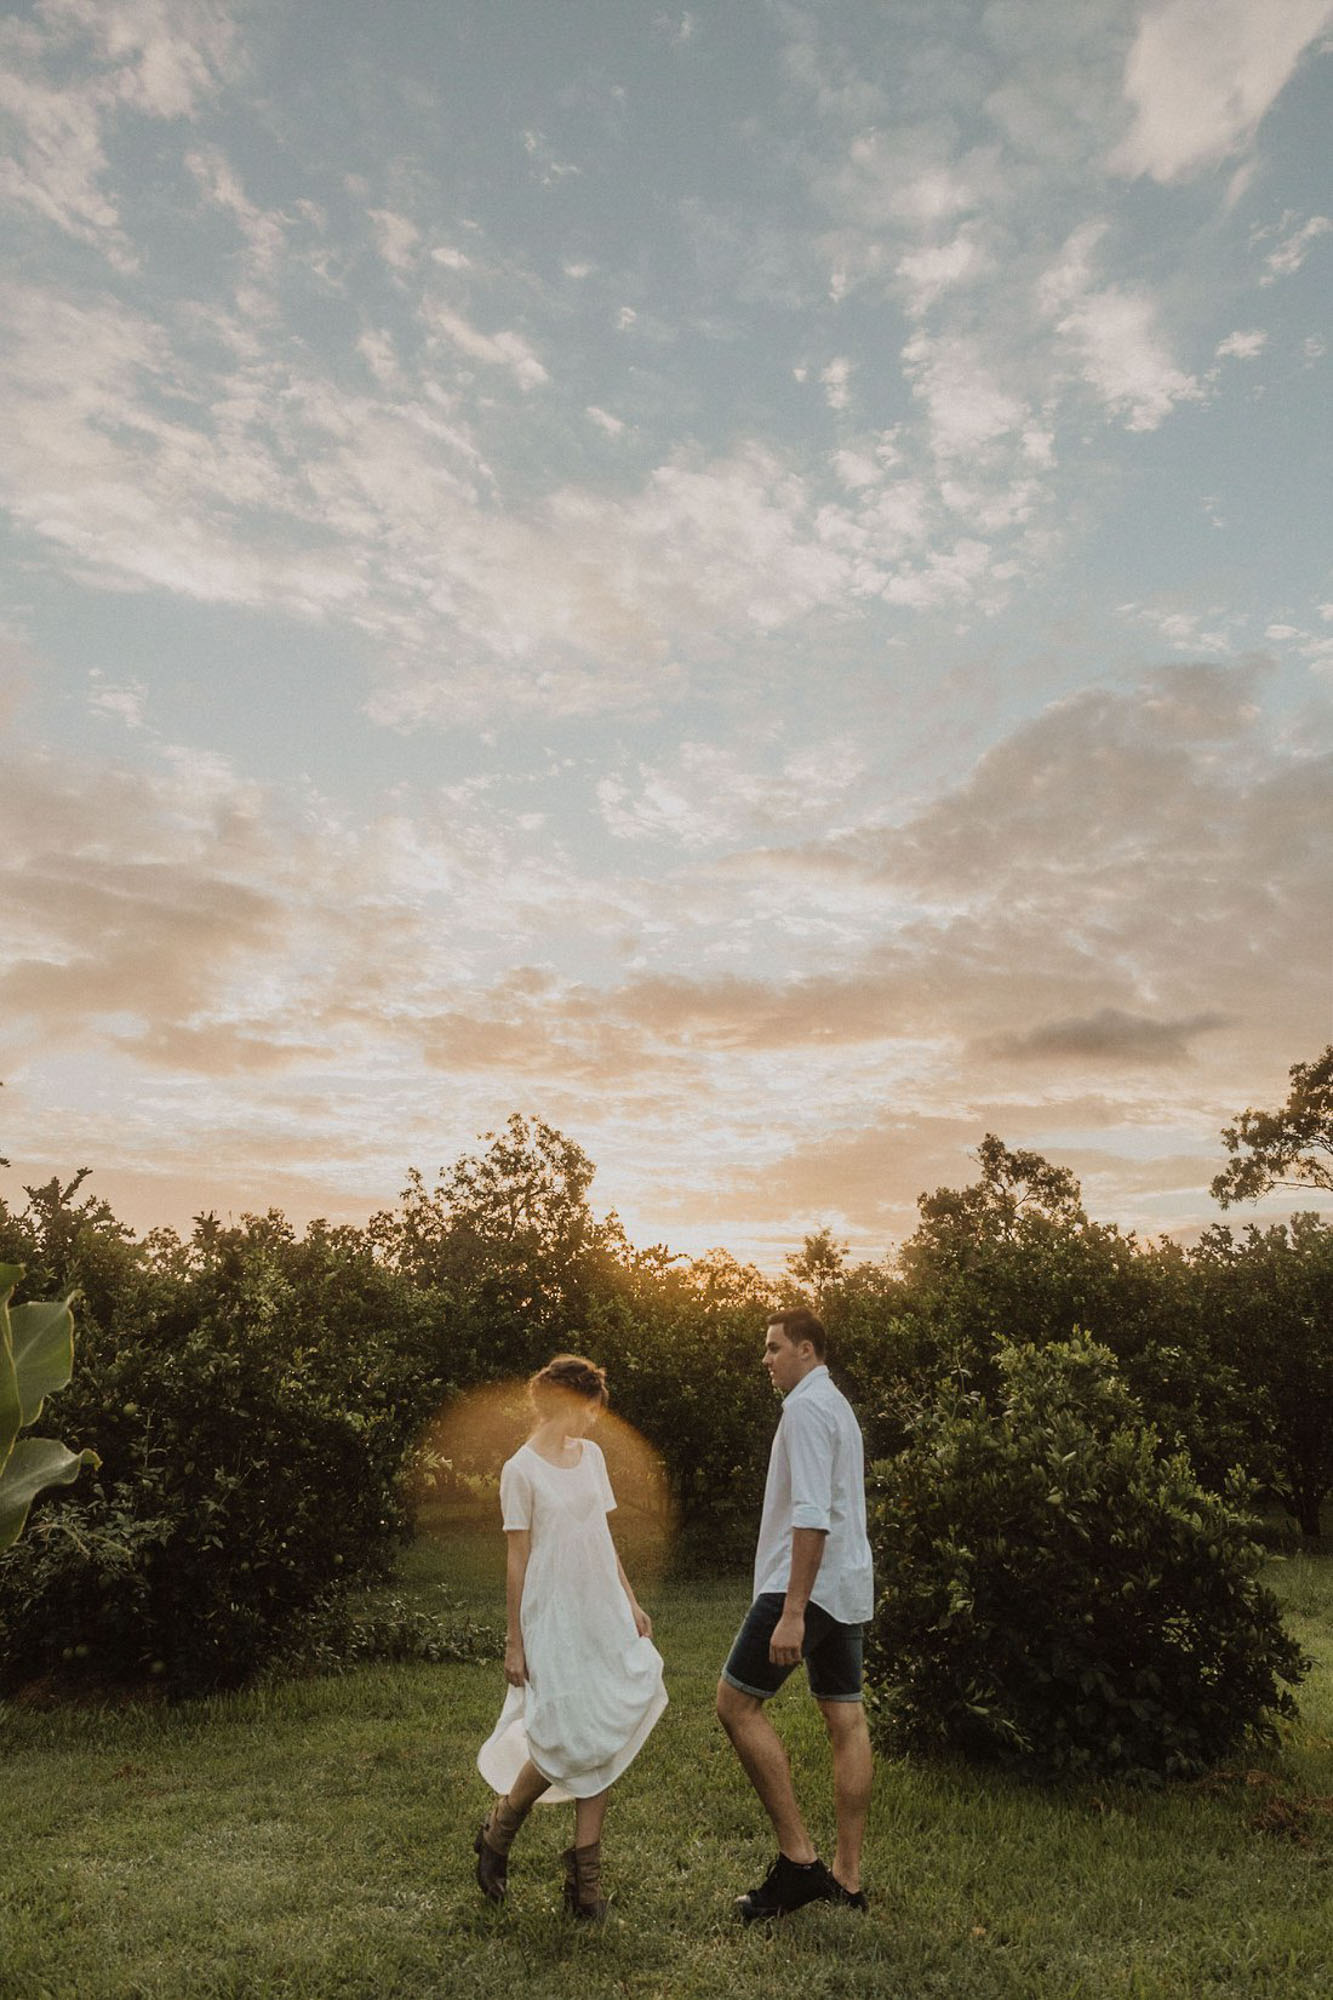 Styled Photshoot - Orchard Picnic Cairns  - Event Styling and Catering by The Collection Co-23.jpg